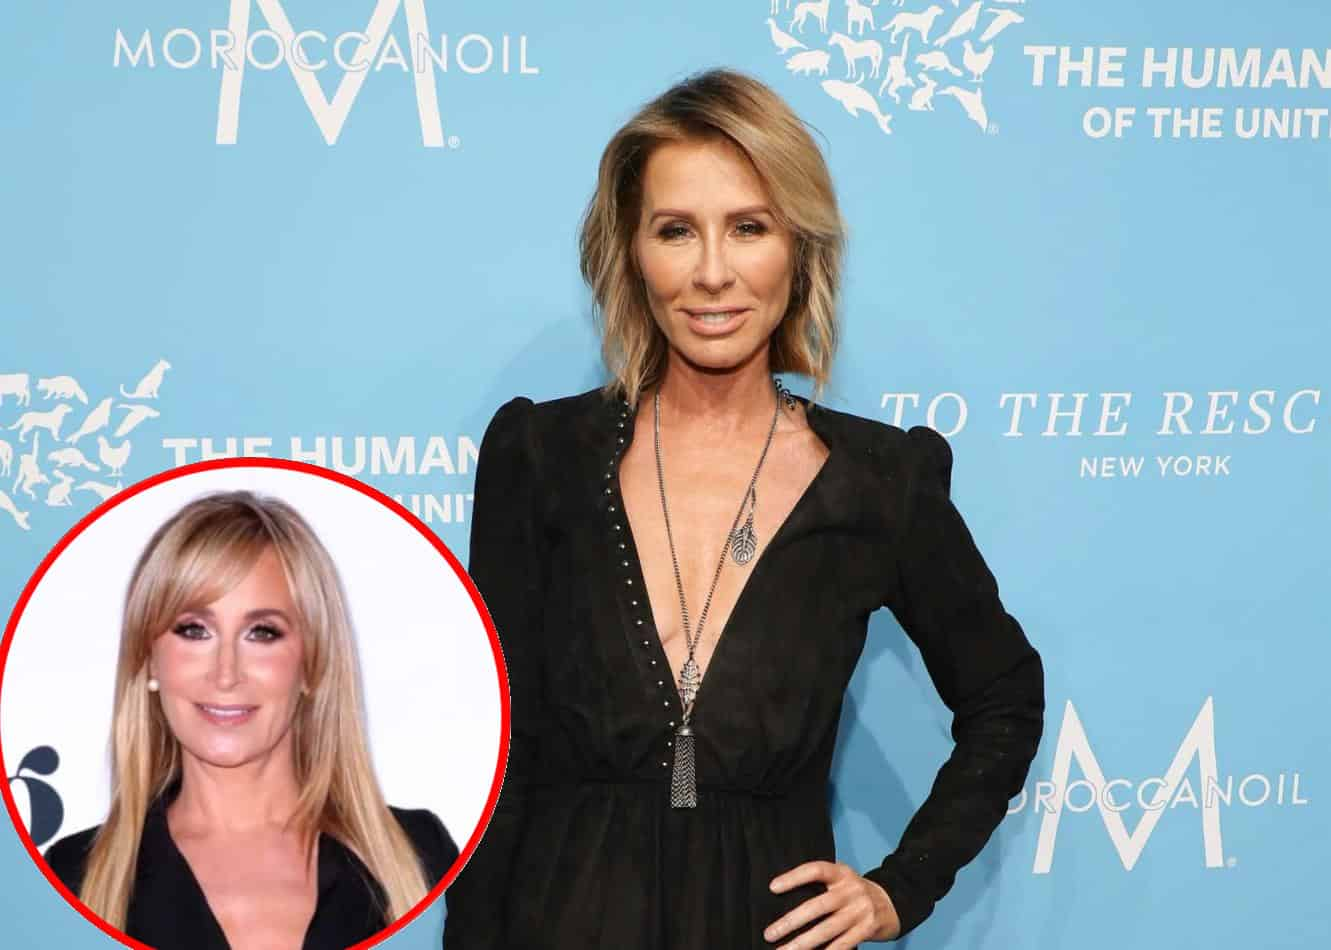 "Carole Radziwell Claims Sonja Morgan's Toaster Oven Venture Was 'Fake Storyline' For RHONY, Plus She Says Sonja, Luann, Bethenny, and Kristen Taekman All Wanted to be ""Actresses"" and Knew How to 'Entertain' For the Show and Admits She Stayed on For the Money"